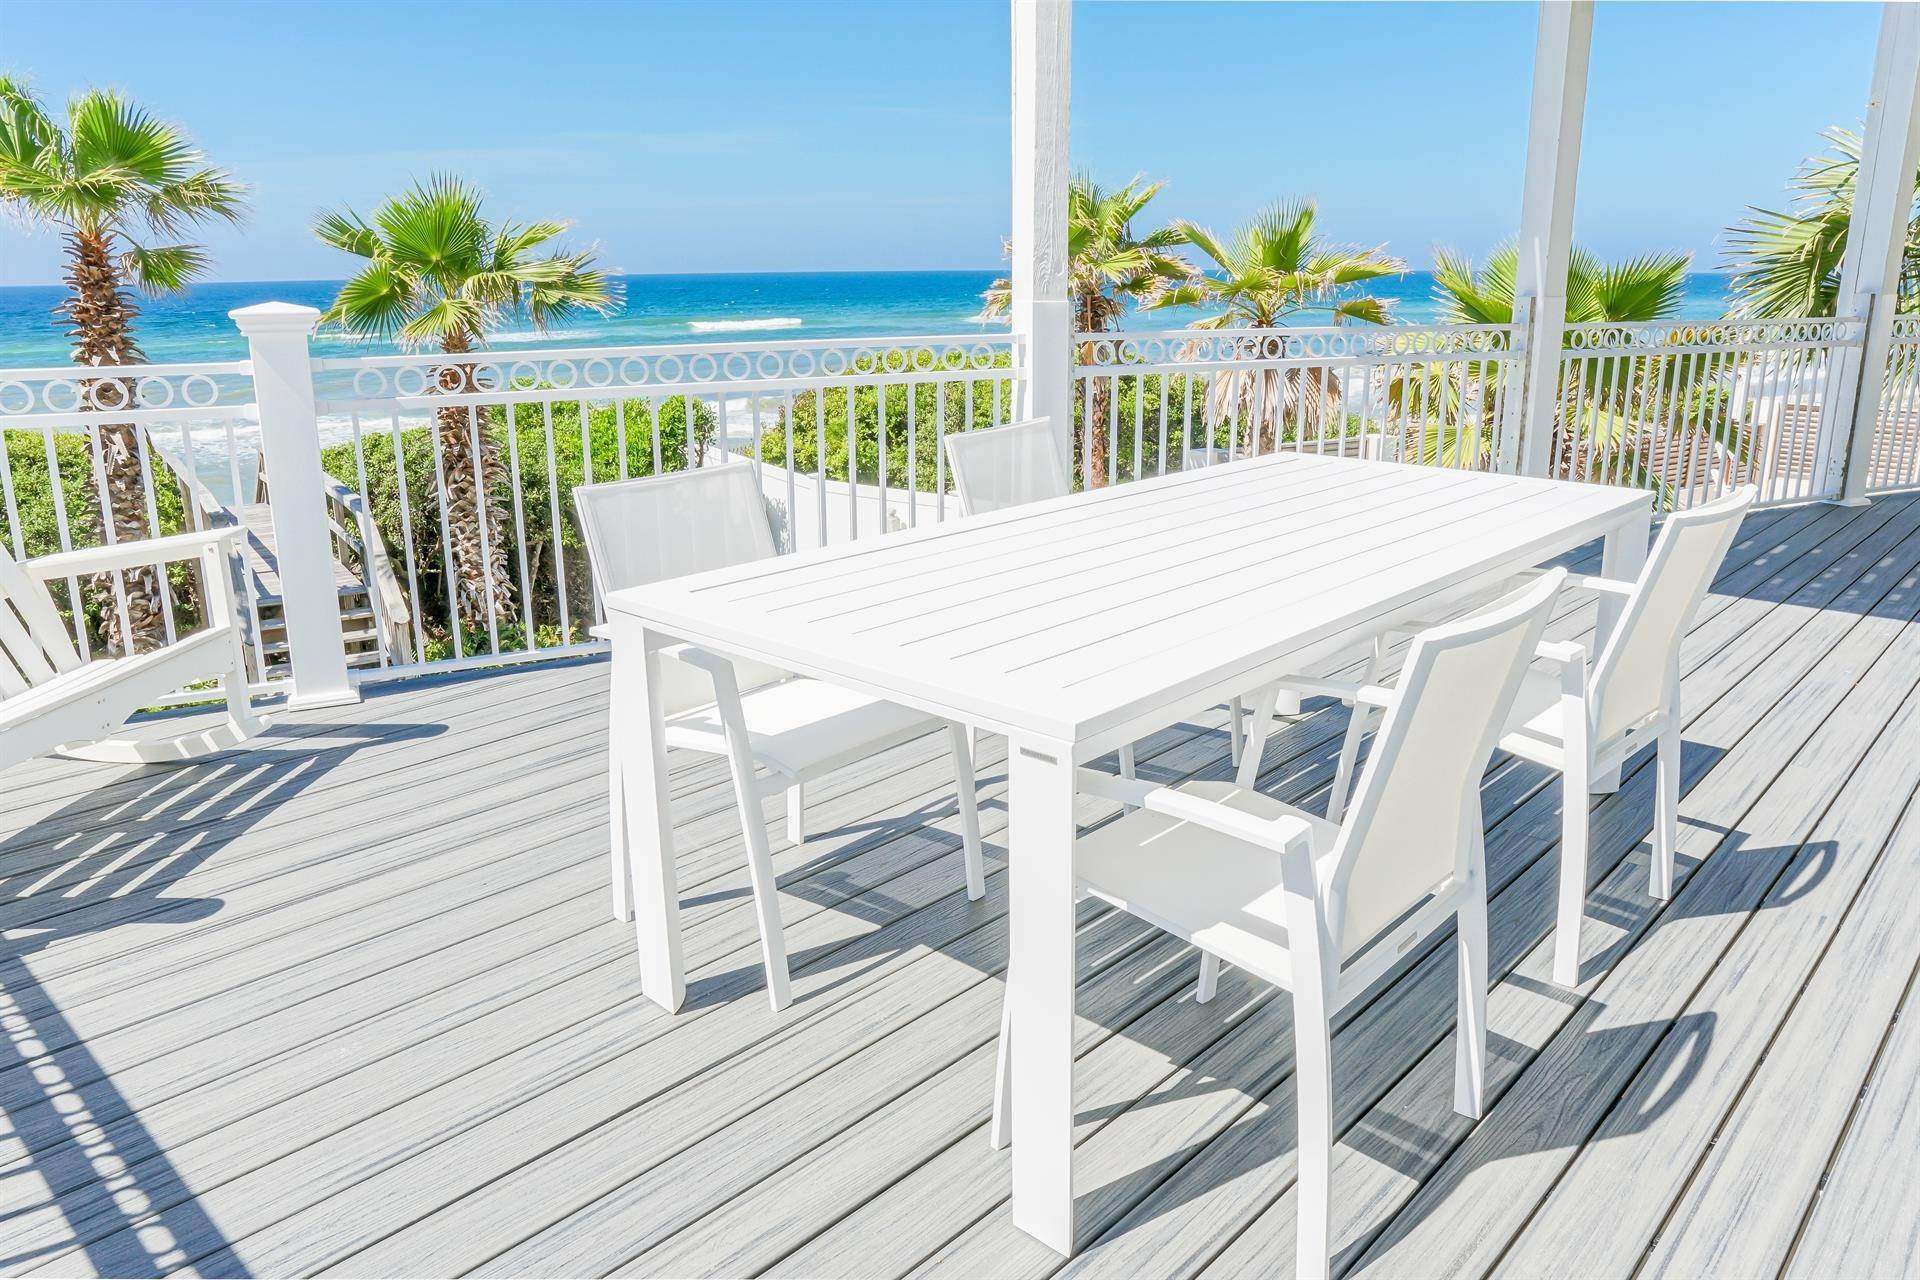 19. Single Family Home 为 出租 在 Oceanfront on Scenic 30A, Florida 8870 E. County Hwy 30A, Seacrest, FL 32461 西克雷斯特, 佛罗里达州,32461 美国